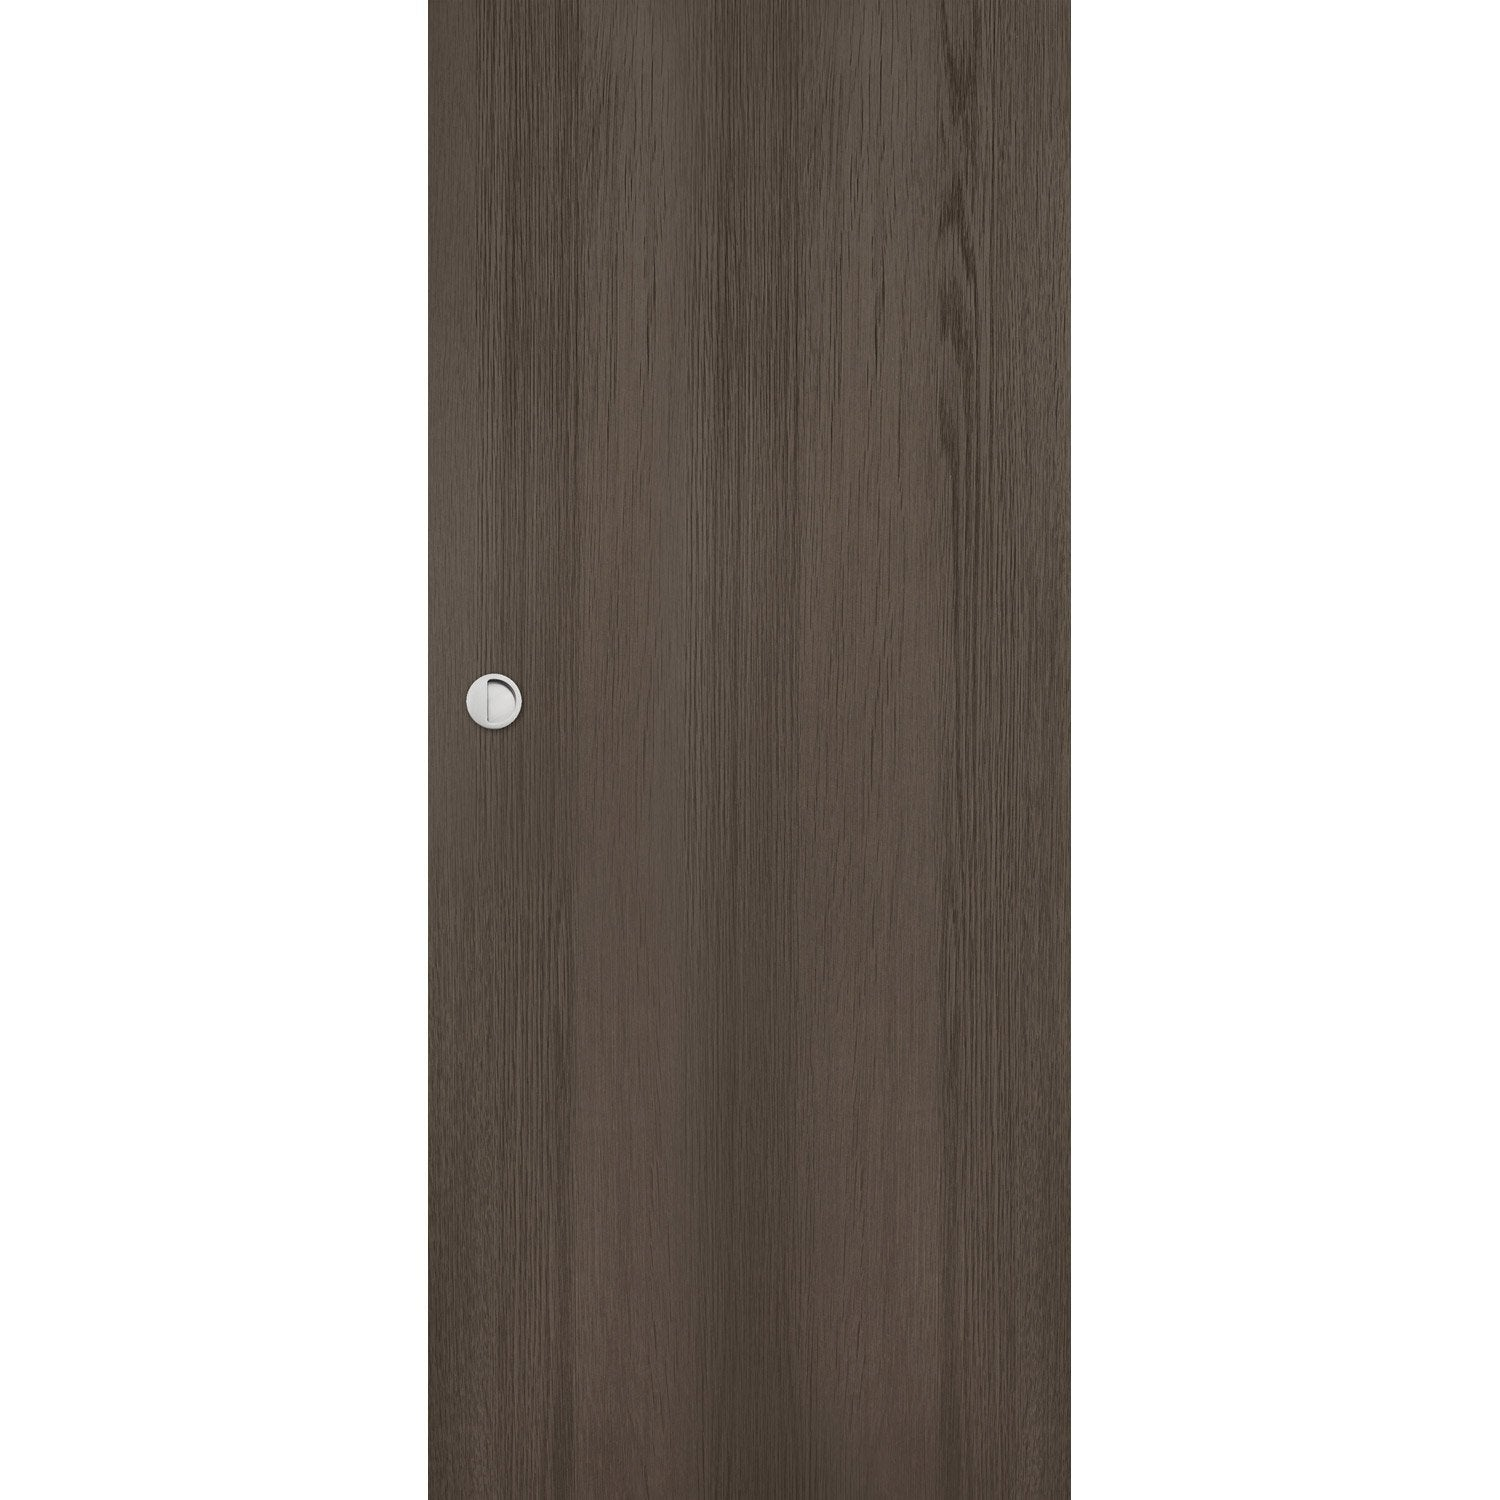 Porte coulissante m dium mdf rev tue gris loulou artens for Porte 3 points leroy merlin